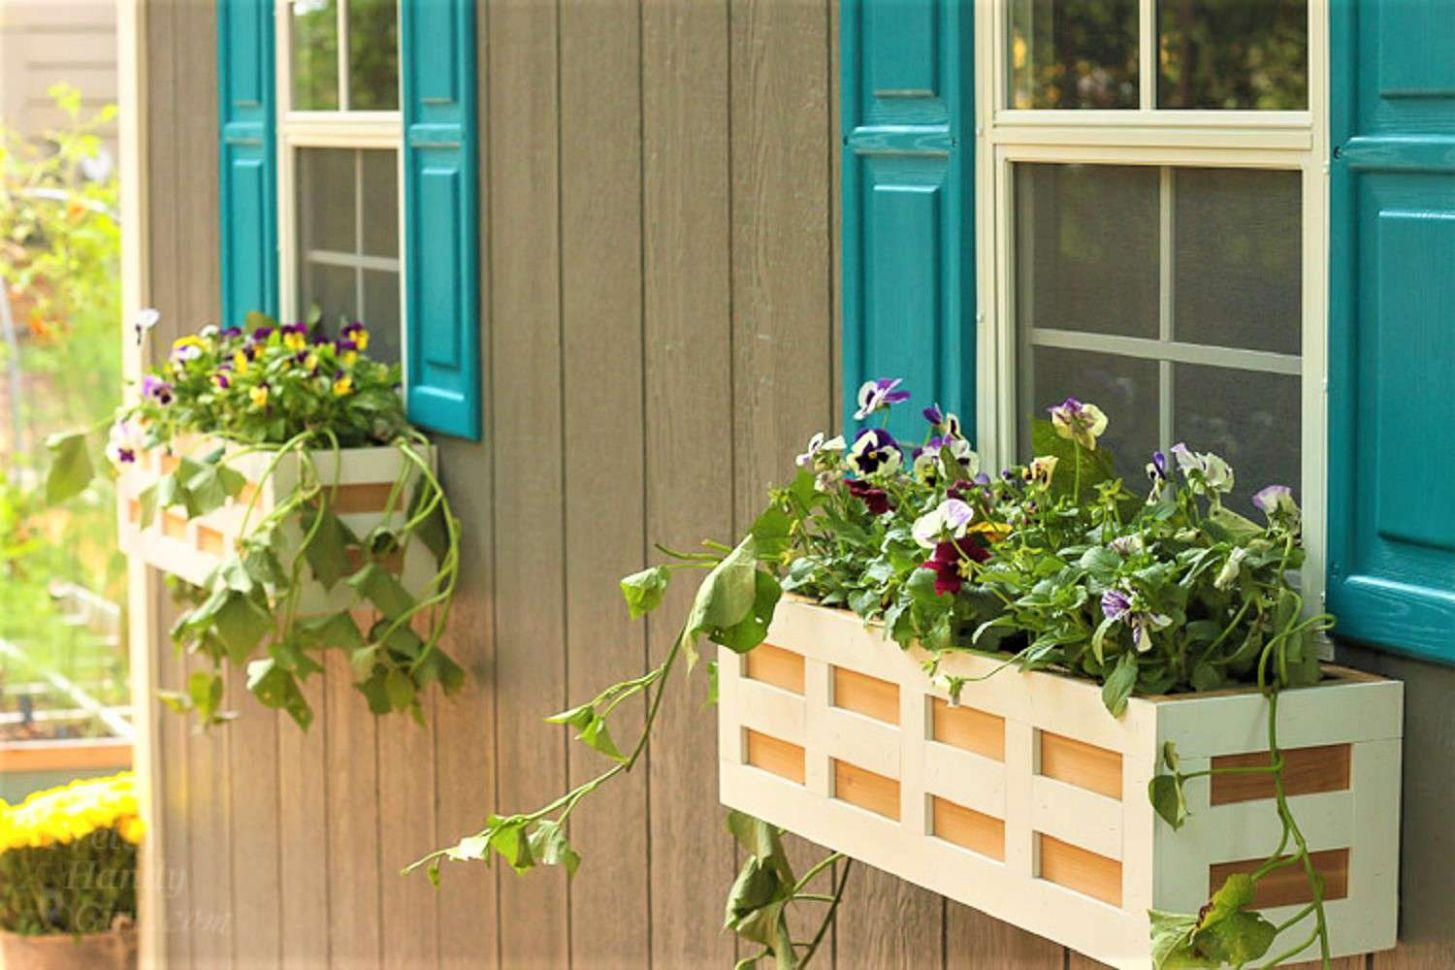 10 DIY Window Box Ideas for Your Home - window box ideas no plants